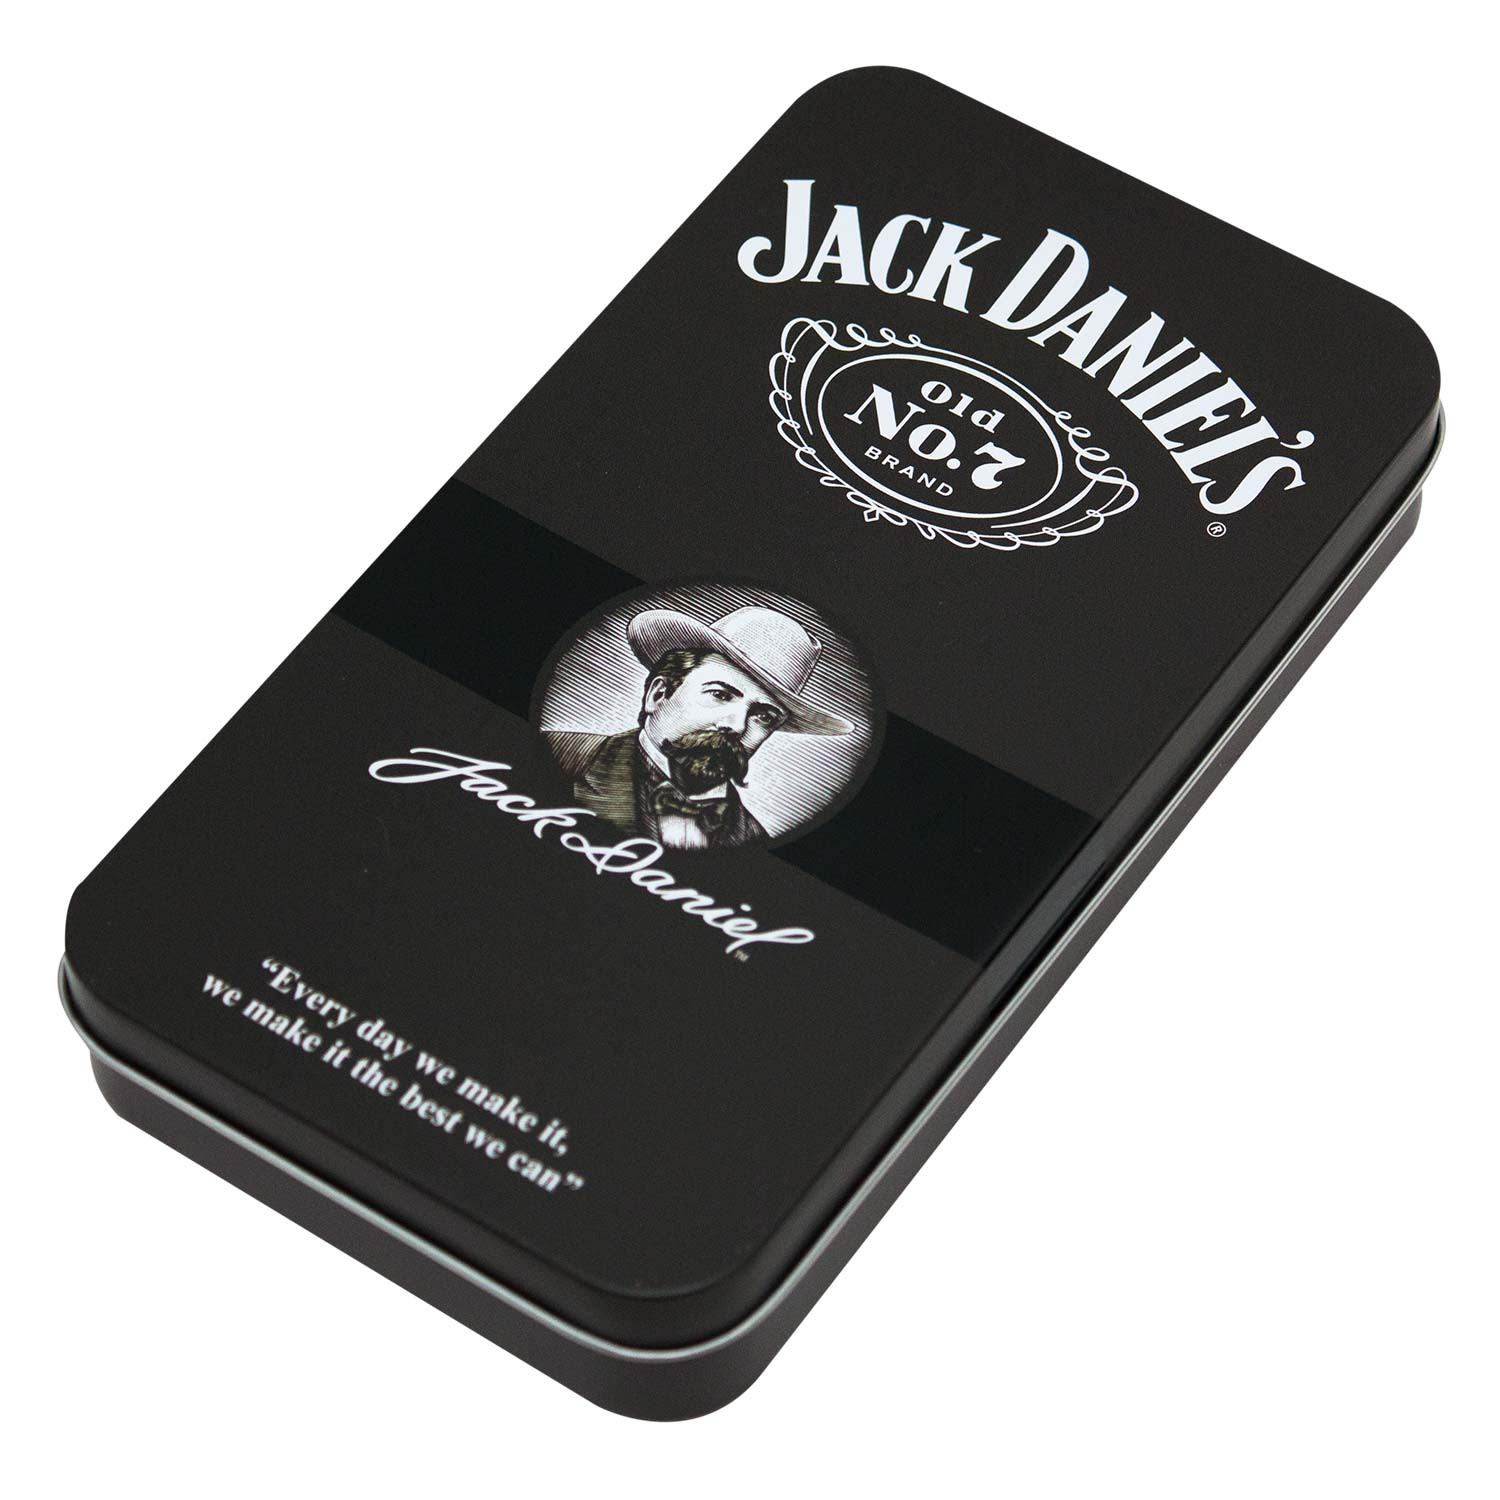 Jack Daniel's Old No. 7 Rodeo Leather Wallet